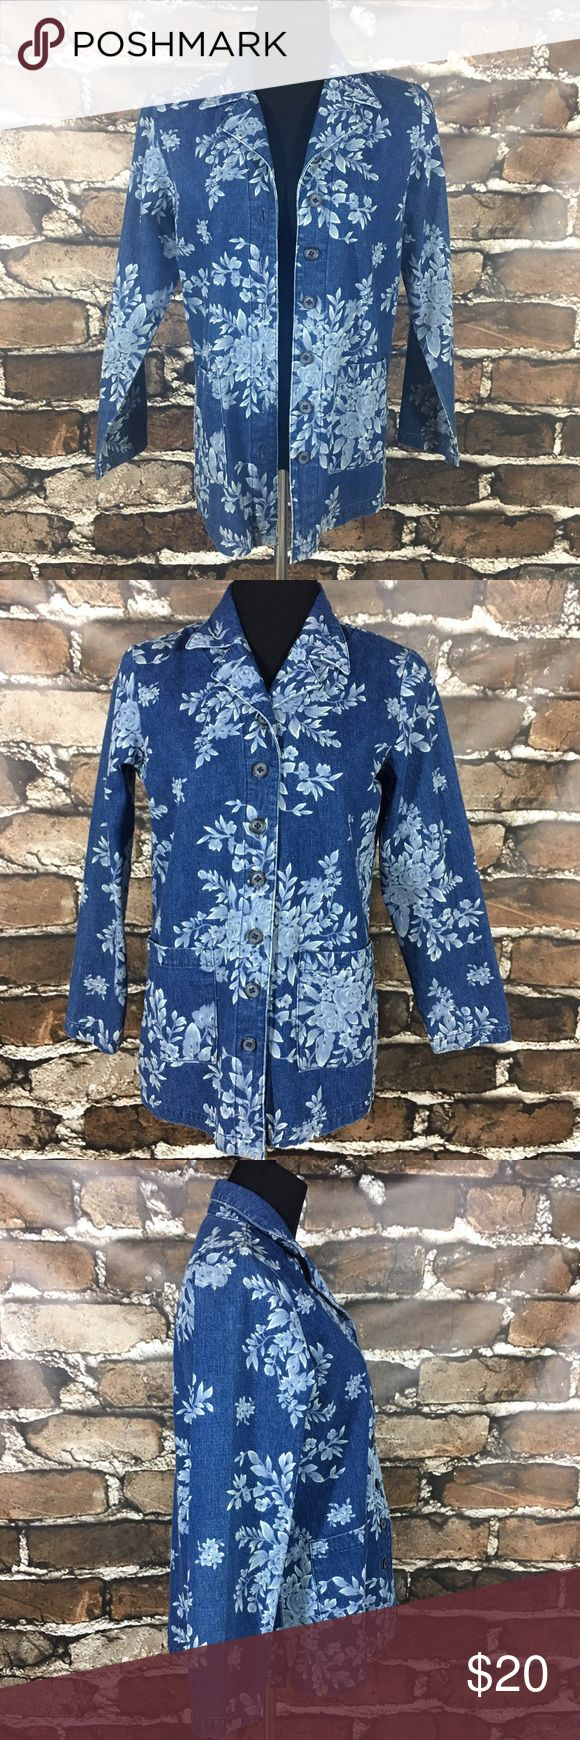 Denim & Co Floral Print Jacket Women's jacket by Denim & Co from QVC. Blue denim with floral print. Button front. Two front pockets. Long sleeves. QVC item number A33812. Women's size XS.  100% cotton.  No rips, tears, stains, or flaws. From a smoke free home.  B010 Denim & Co Jackets & Coats Jean Jackets